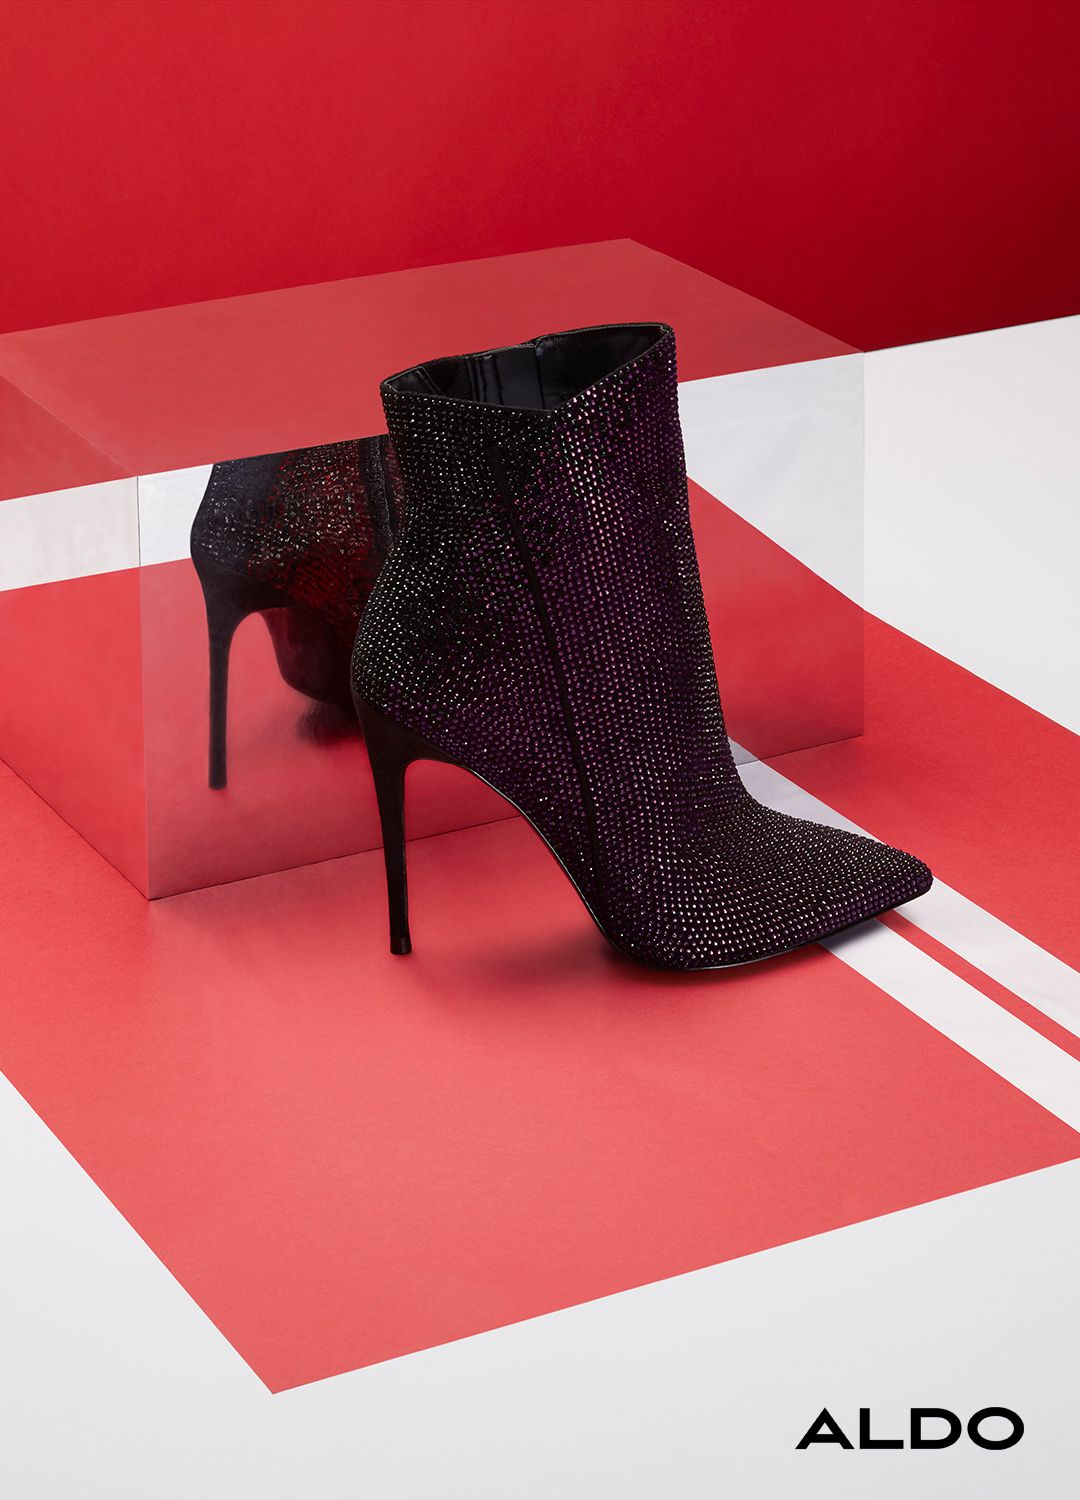 a37c499f5d9 All I want under the tree are shoes from Aldo!